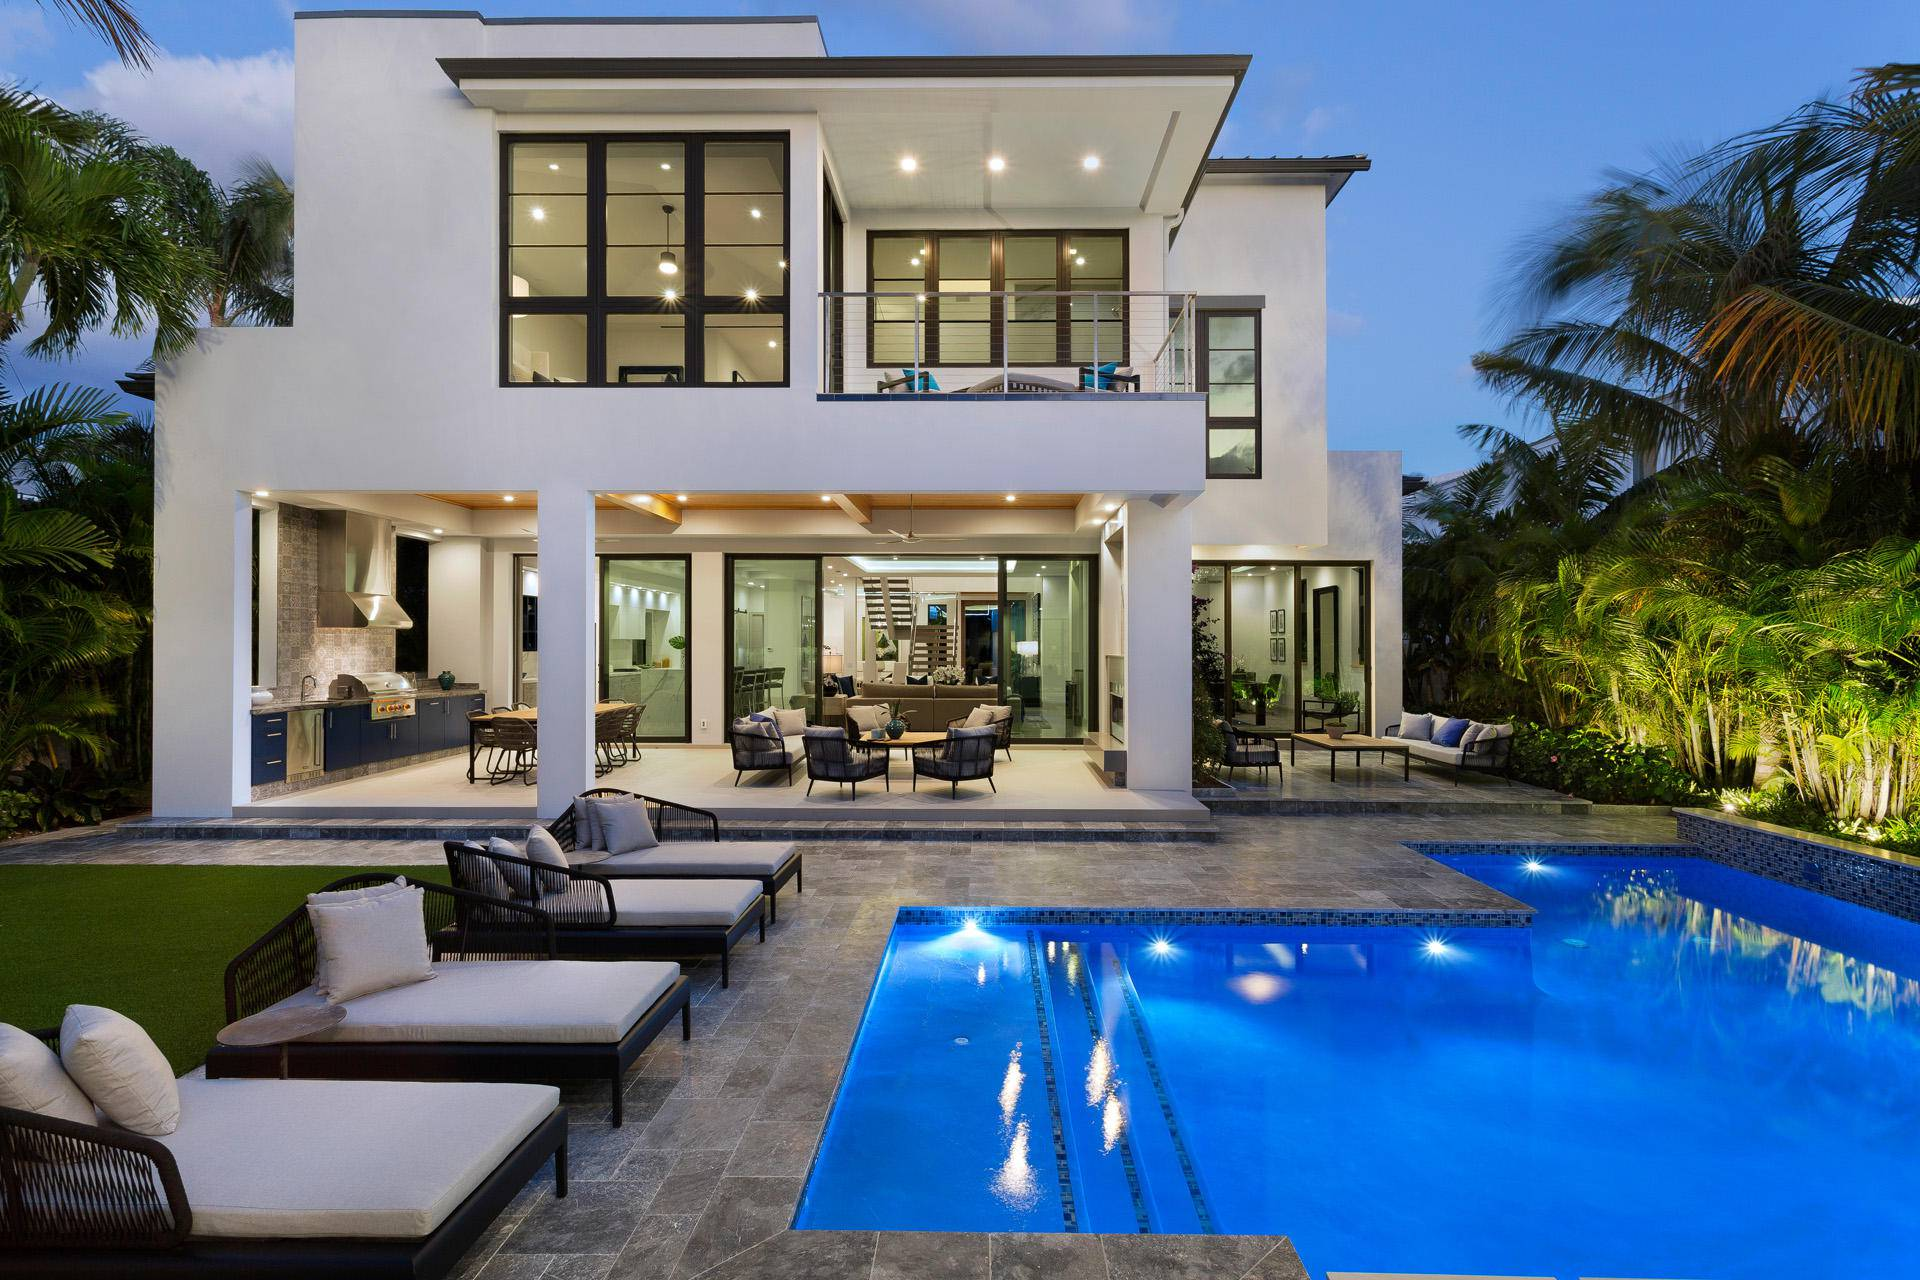 Ocean Boulevard contemporary masterpiece in Delray Beach, Florida, luxury houses